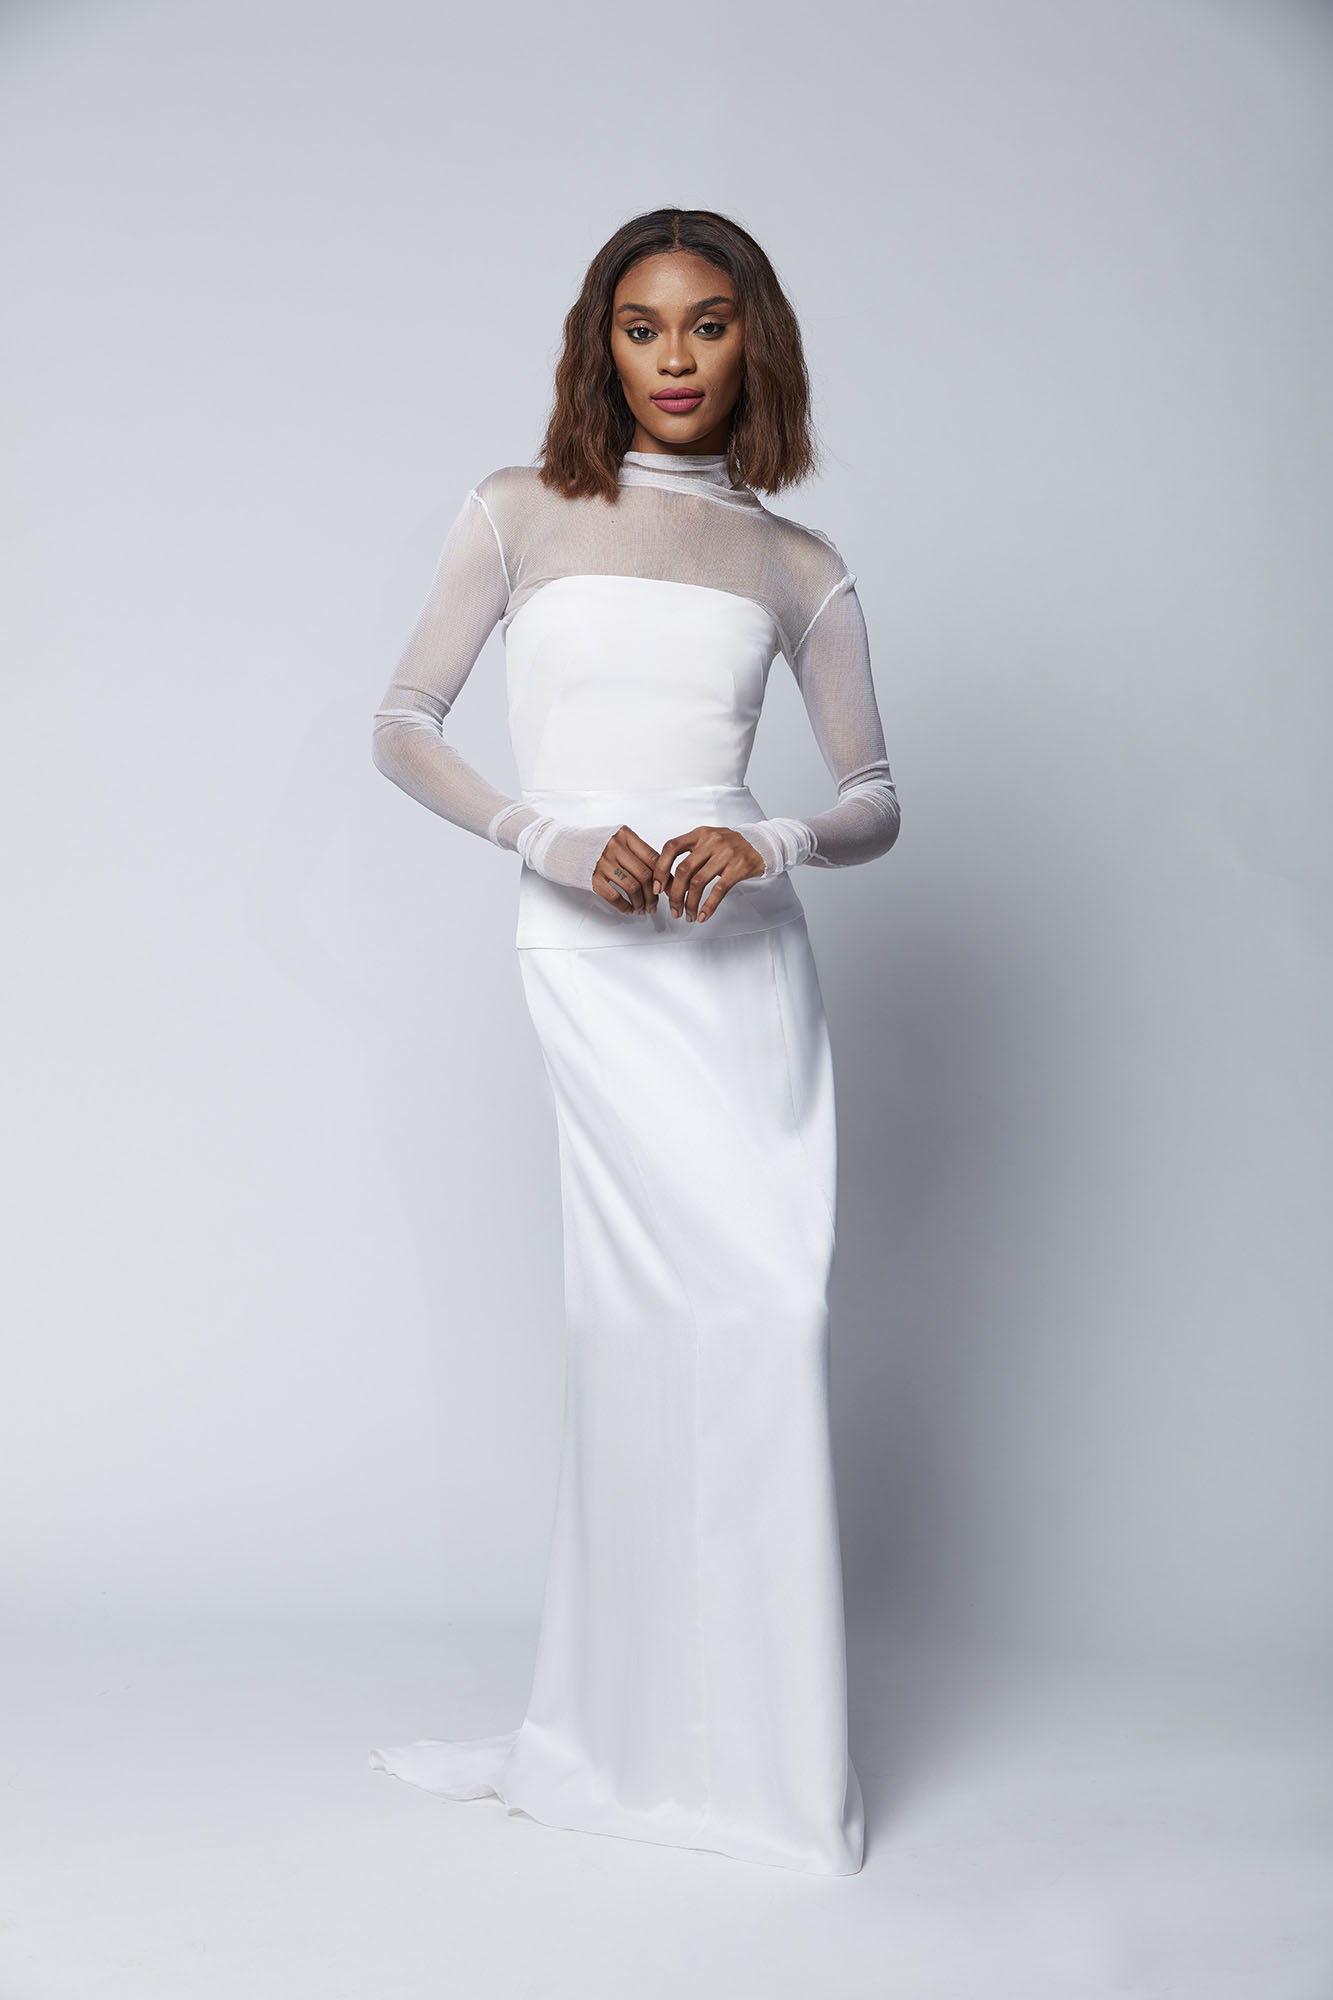 This chic silk mesh turtleneck adds drama to the clean lines of the Nivi bustier top and the drop waist Tiana column skirt. Perfect for brides who want edge and sophistication on their wedding day.